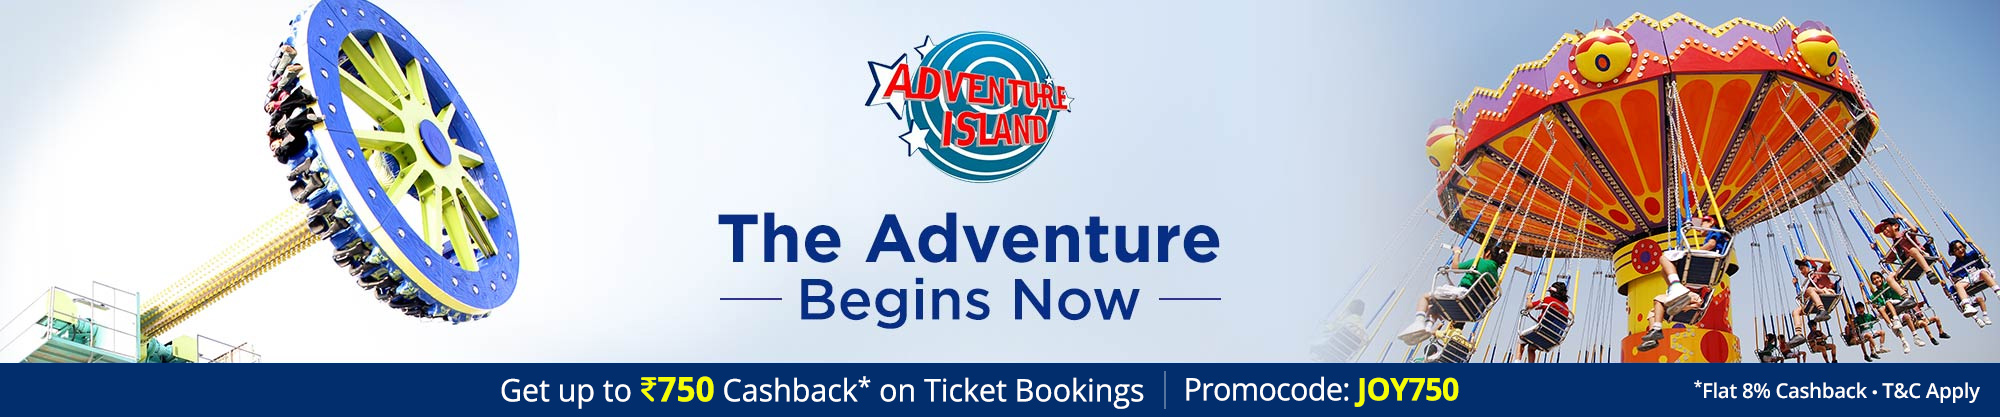 Adventure Island in Delhi – Find Ticket Price, Entry Fee and